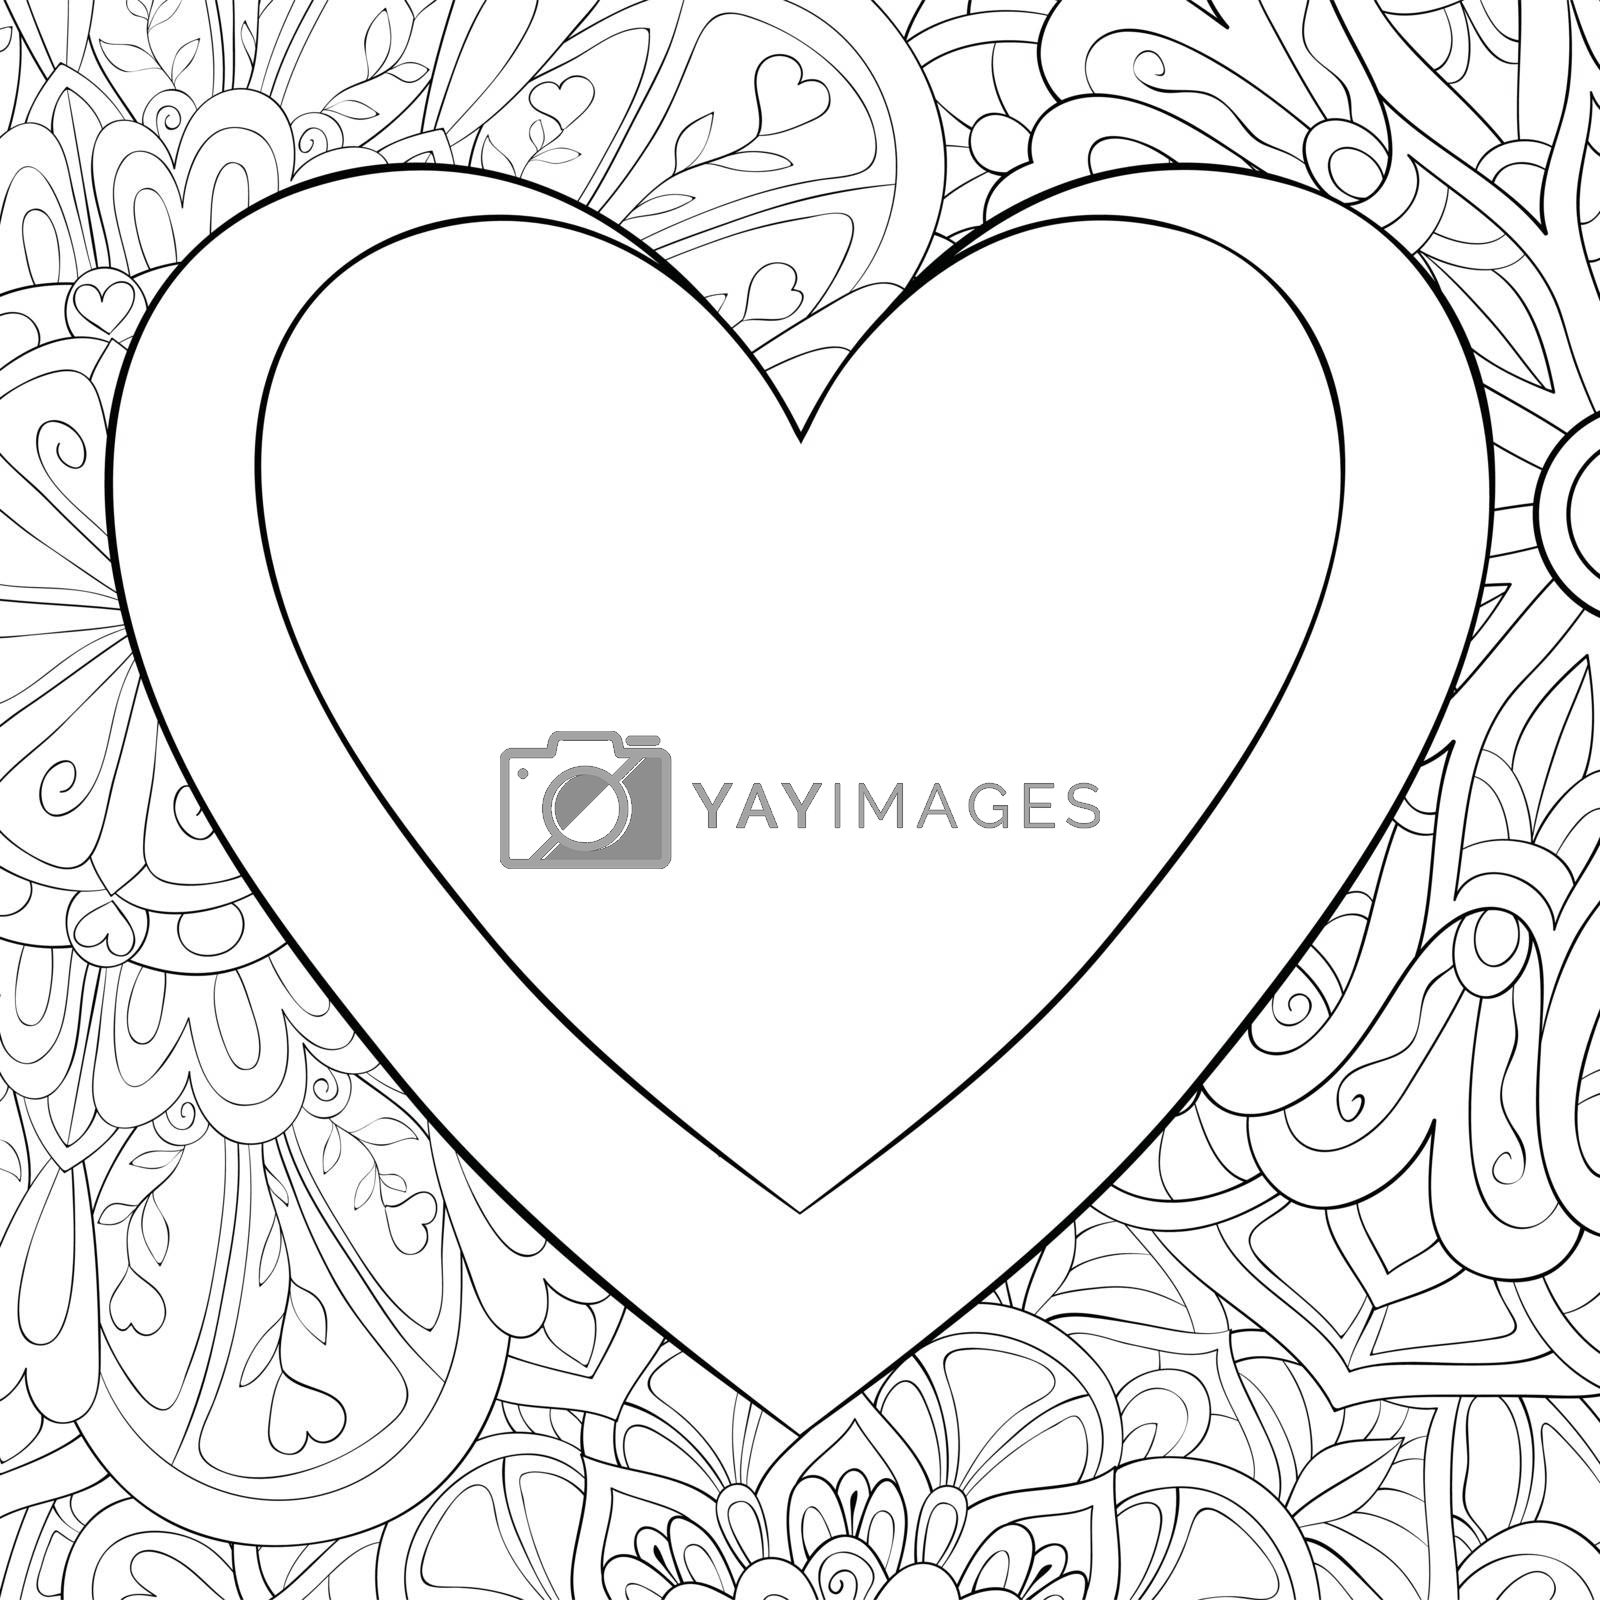 A cute heart with ornaments image for relaxing.A coloring book,page for adults.Zen art style illustration for print.Poster design.